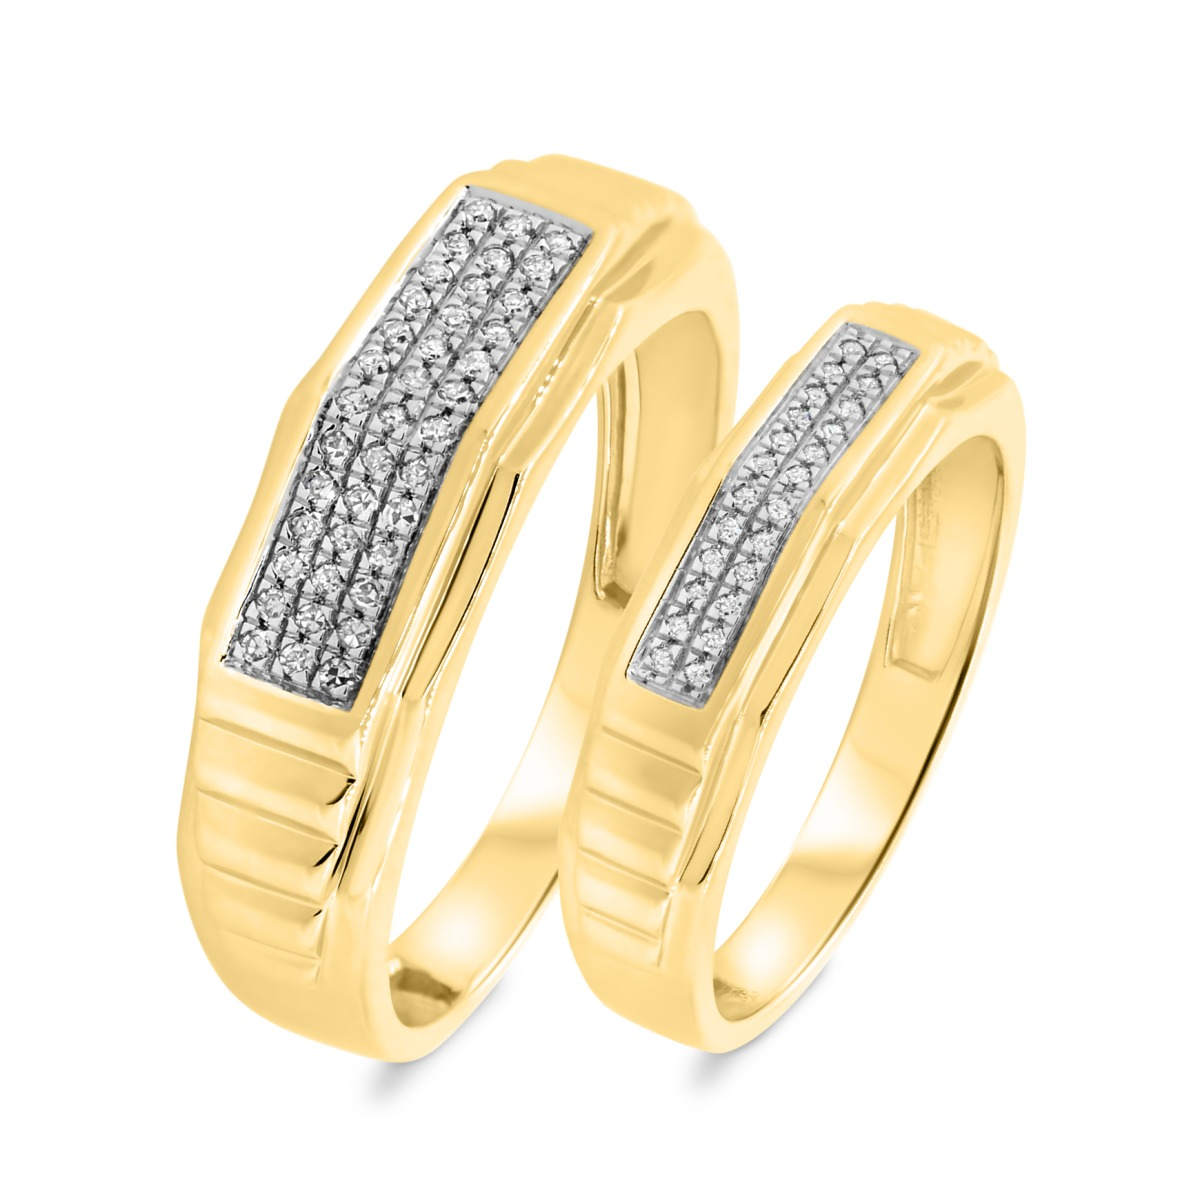 1/5 Carat T.W. Diamond Matching Wedding Band Set 10K Yellow Gold